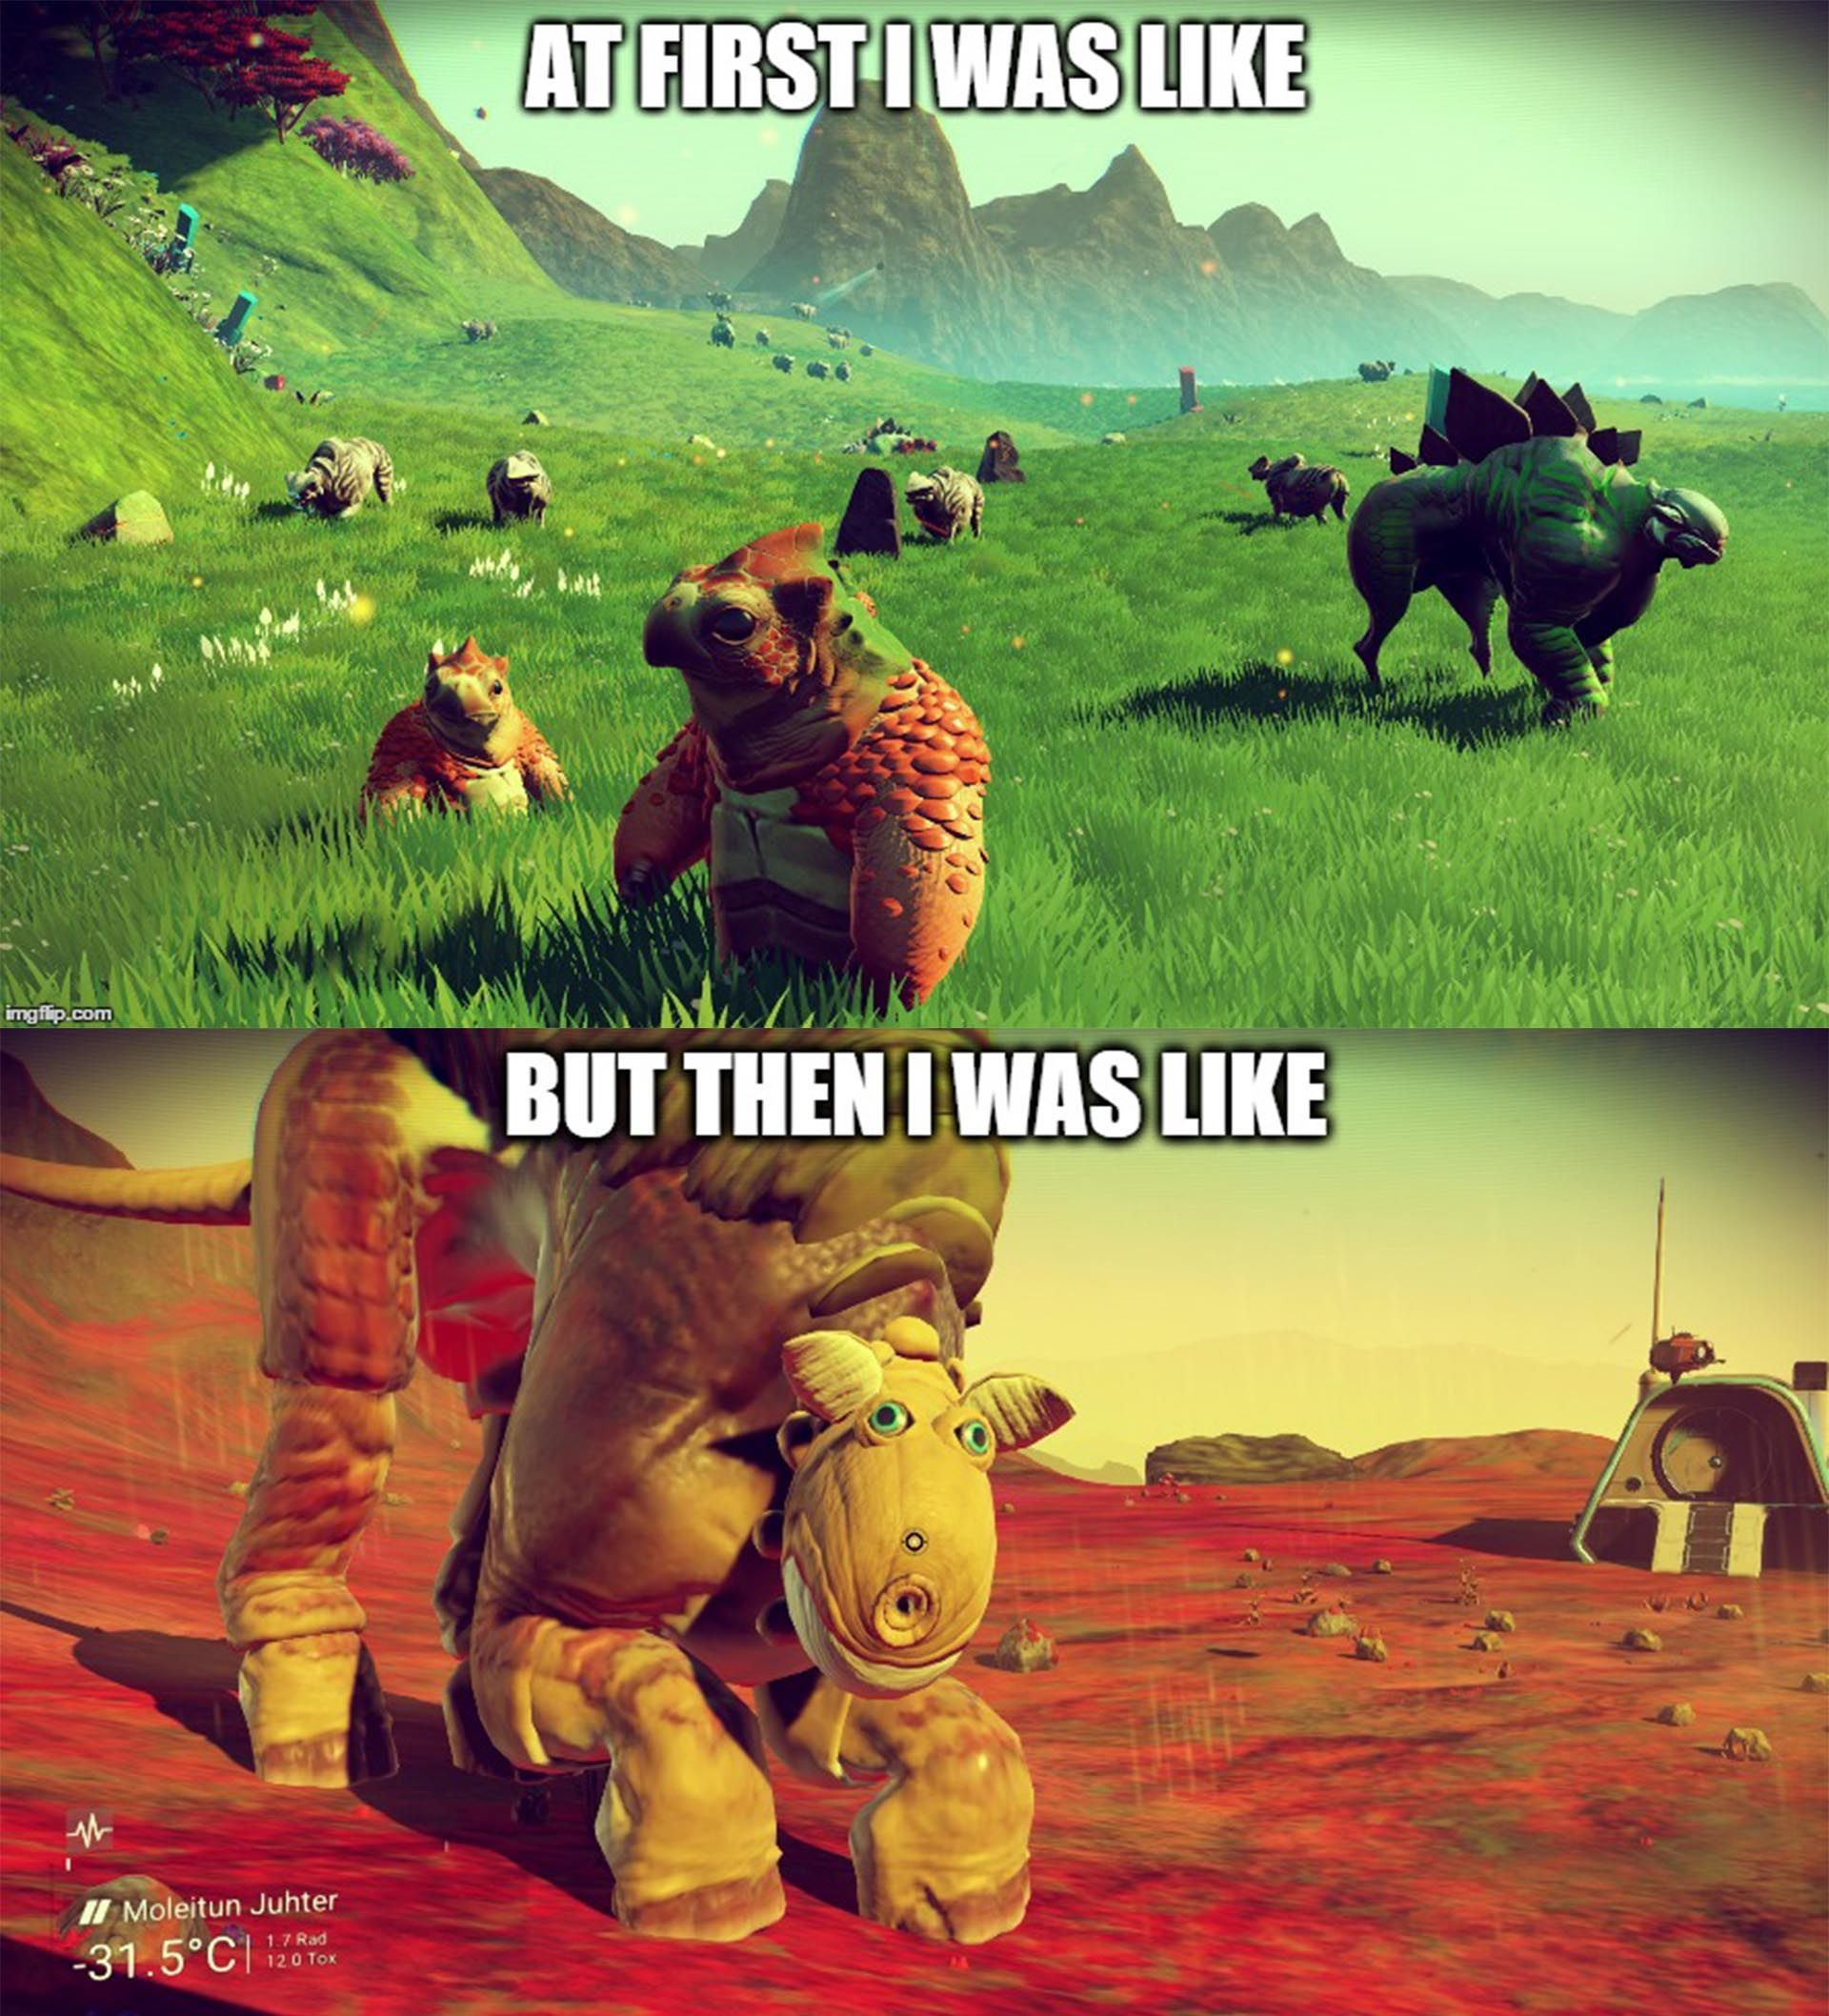 No Man's Sky Then and Now #gaming #games #gamer #videogames #videogame  #anime #video #Funny #xbox #nintendo #TVGM #surprise | No man's sky, Sky,  Man